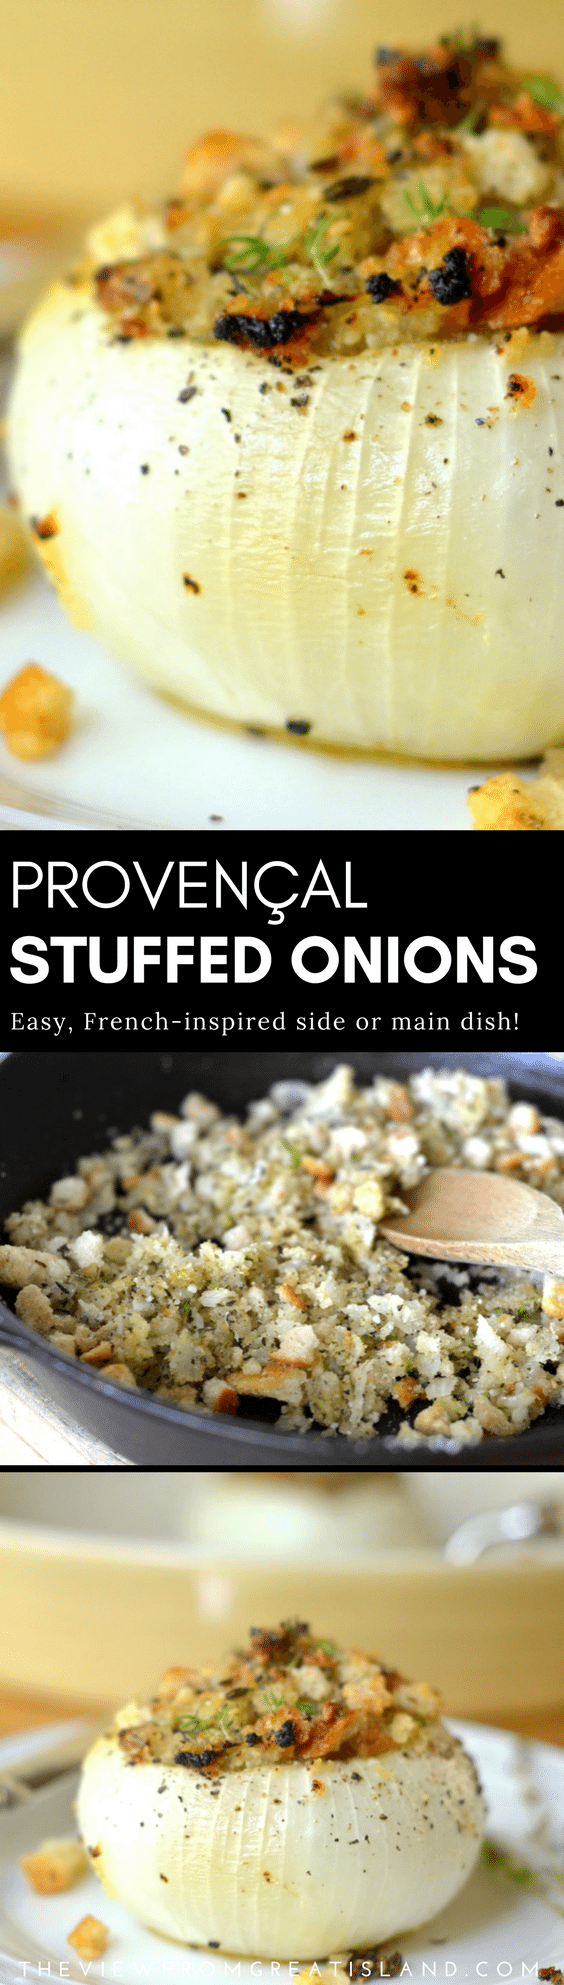 Provençal Style Stuffed Onions are a wonderfully elegant and easy French inspired side dish that goes from holiday feasts to everyday meals. #stuffedonions #onions #vegetarian #thanksgivingside #herbesdeprovence #sidedish #vegetables #stuffedonionrecipe